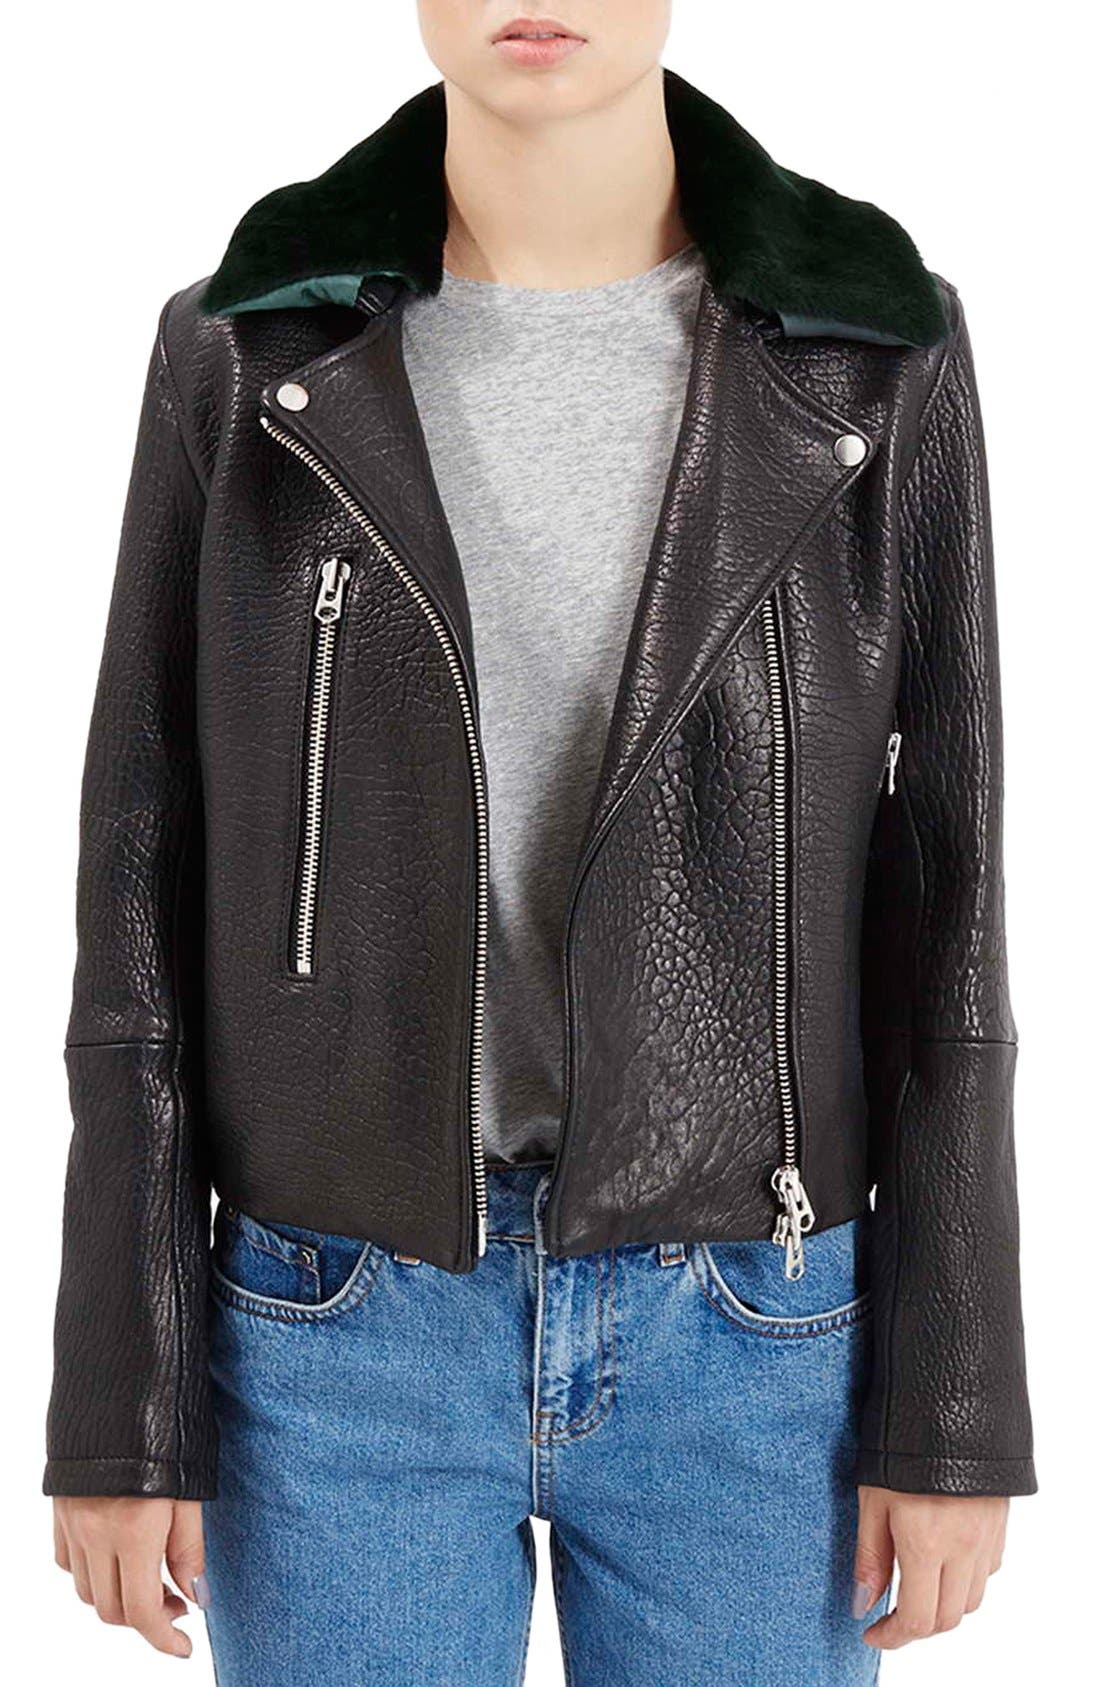 Alternate Image 1 Selected - Topshop Boutique Leather Moto Jacket with Shearling Collar